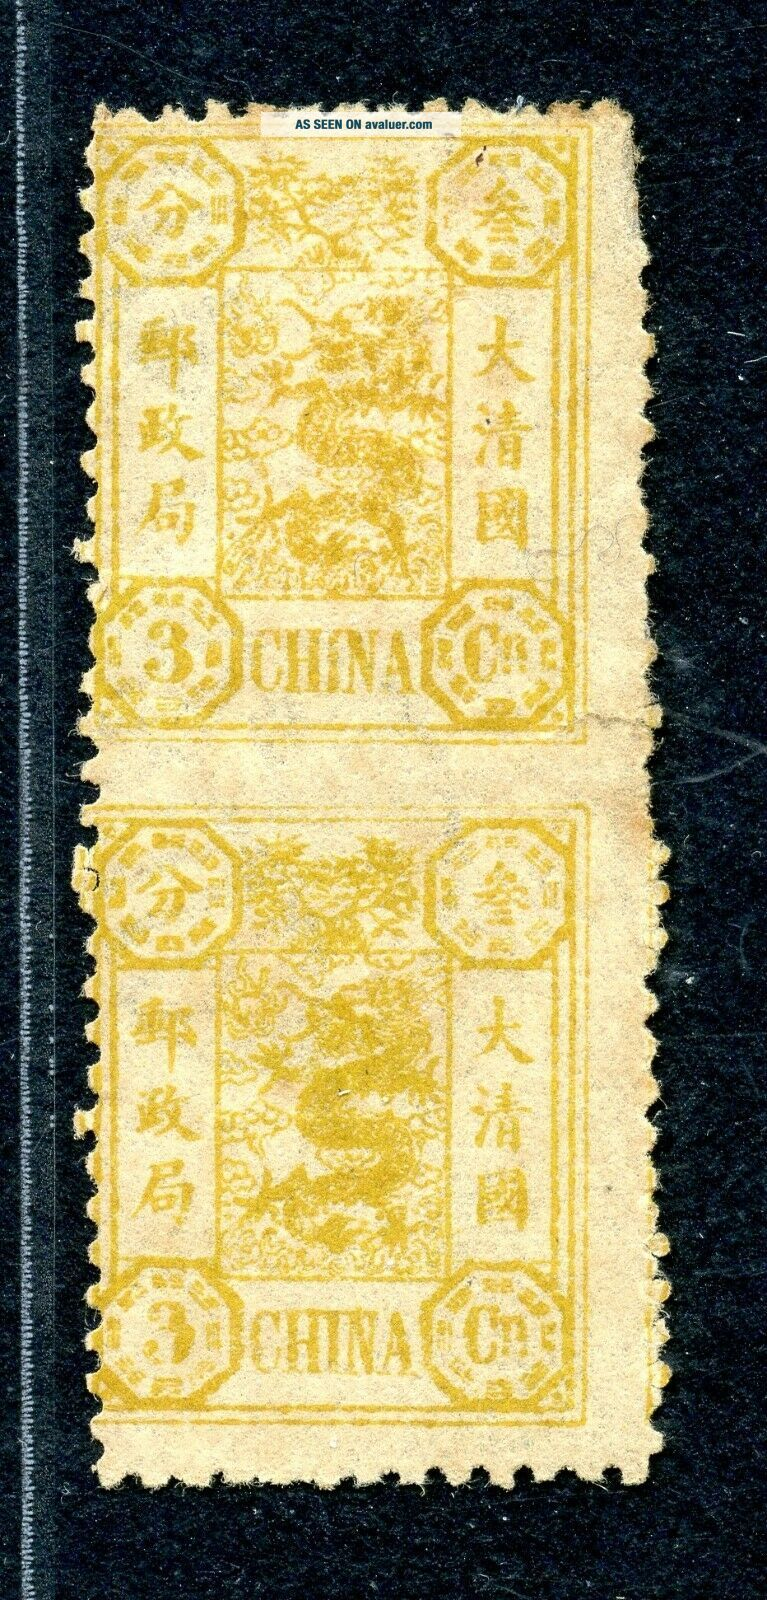 1894 Dowager 1st print 3 cds imperforate between pair Chan 24b VERY RARE